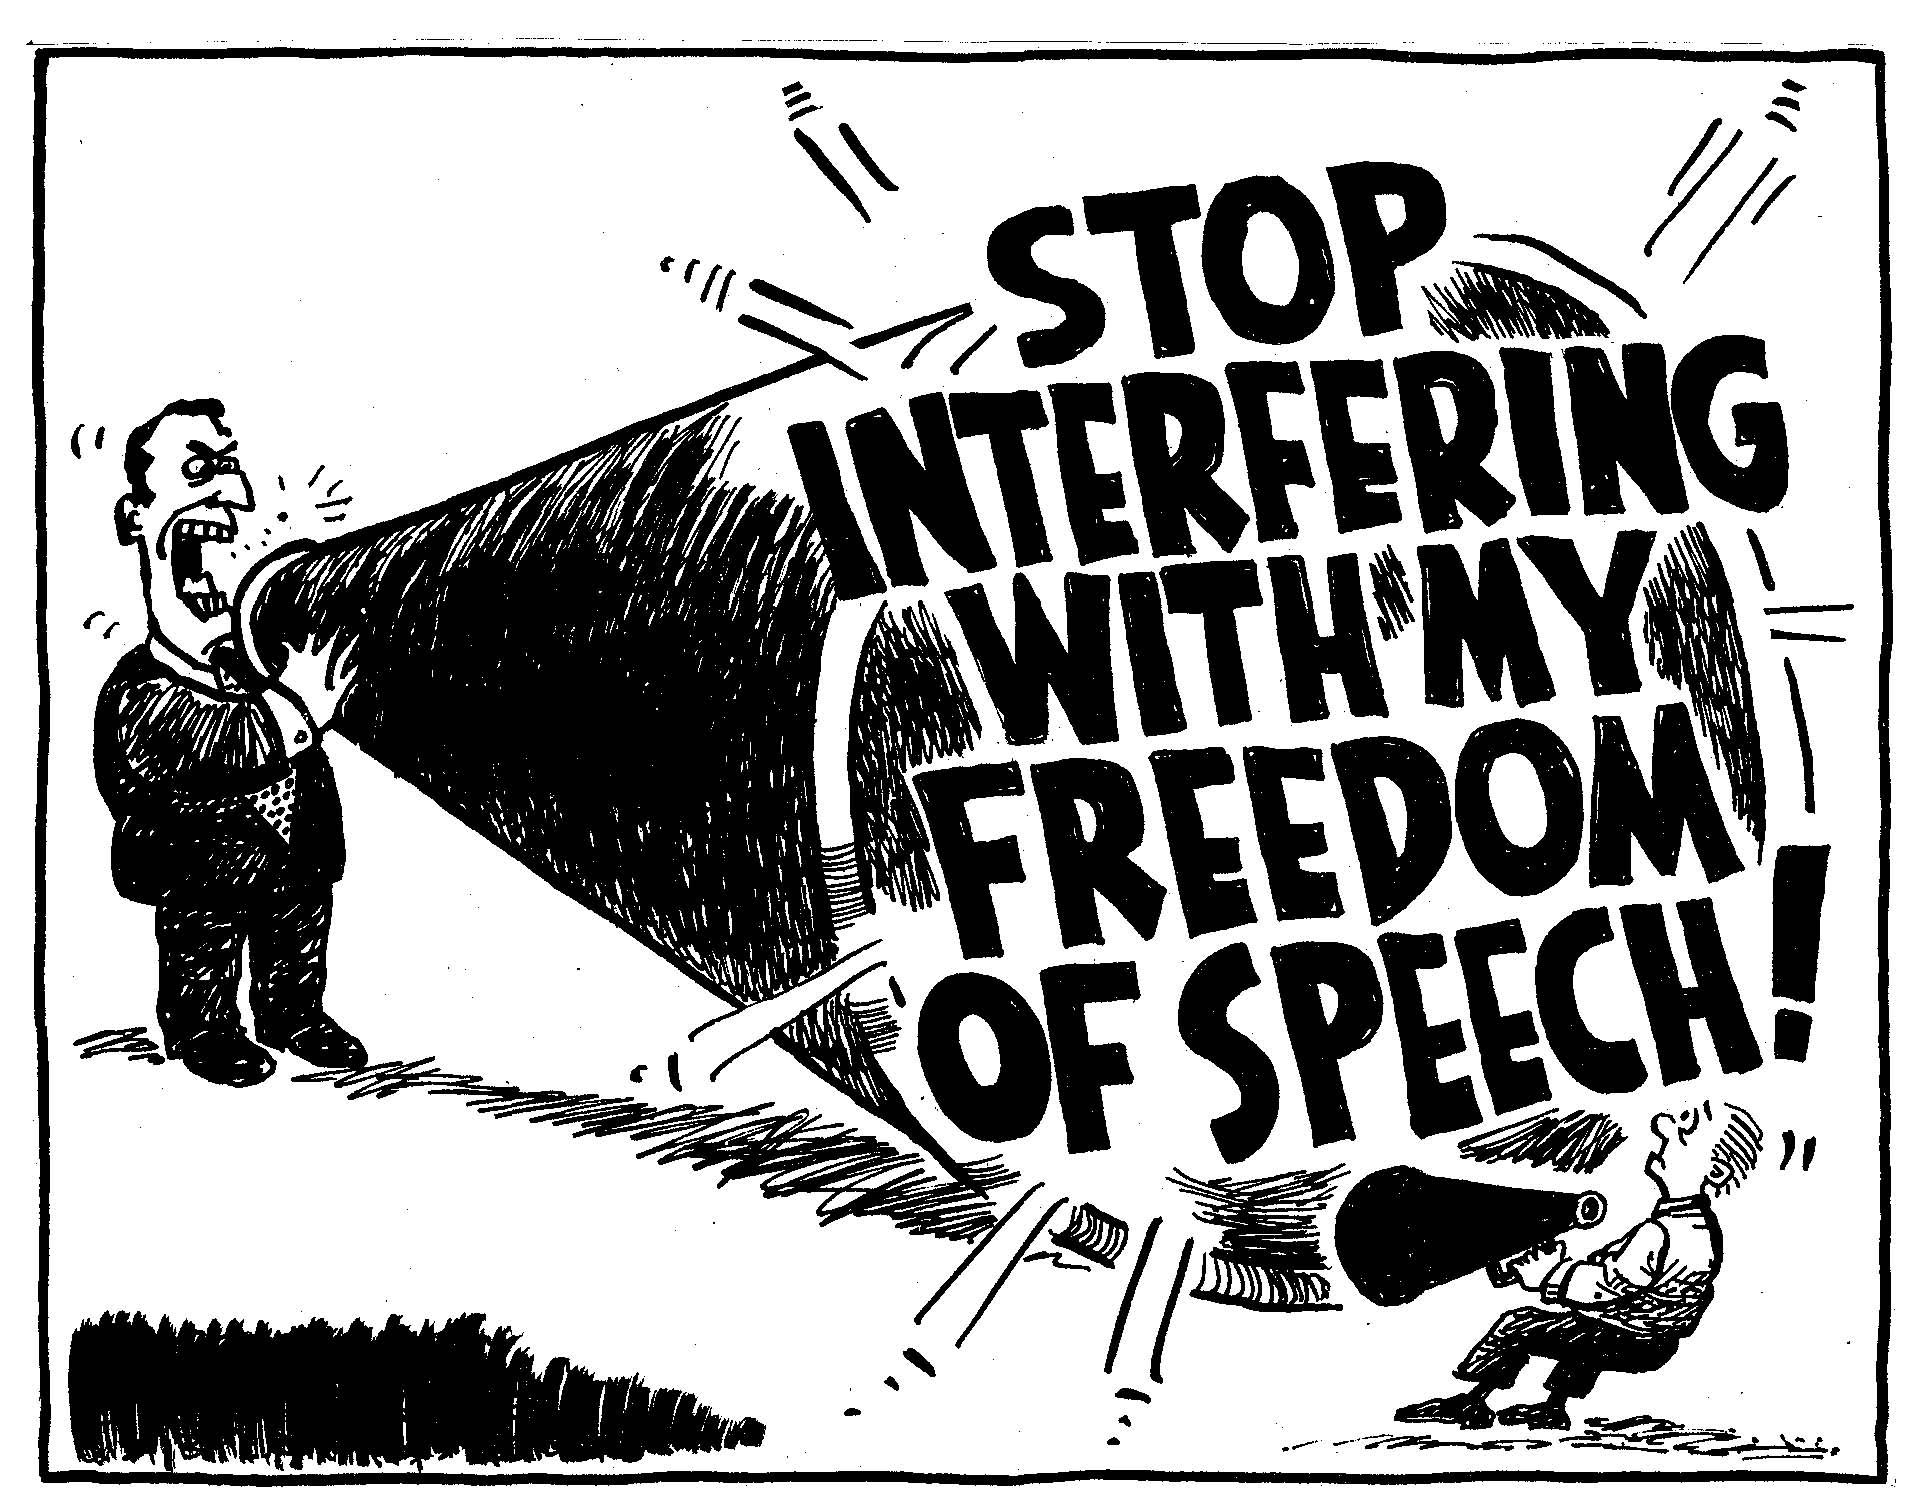 EXAMINING THE FREEDOM OF SPEECH & EXPRESSION.